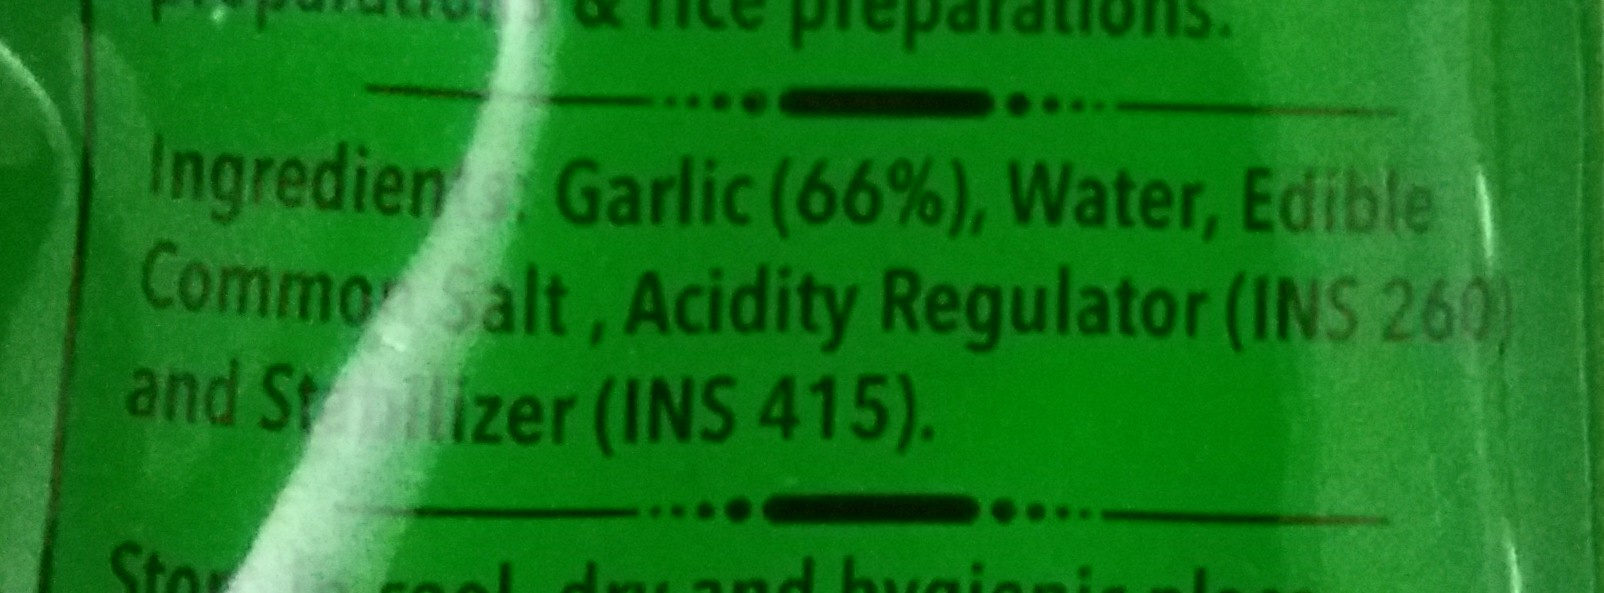 Garlic Paste - Ingredients - en